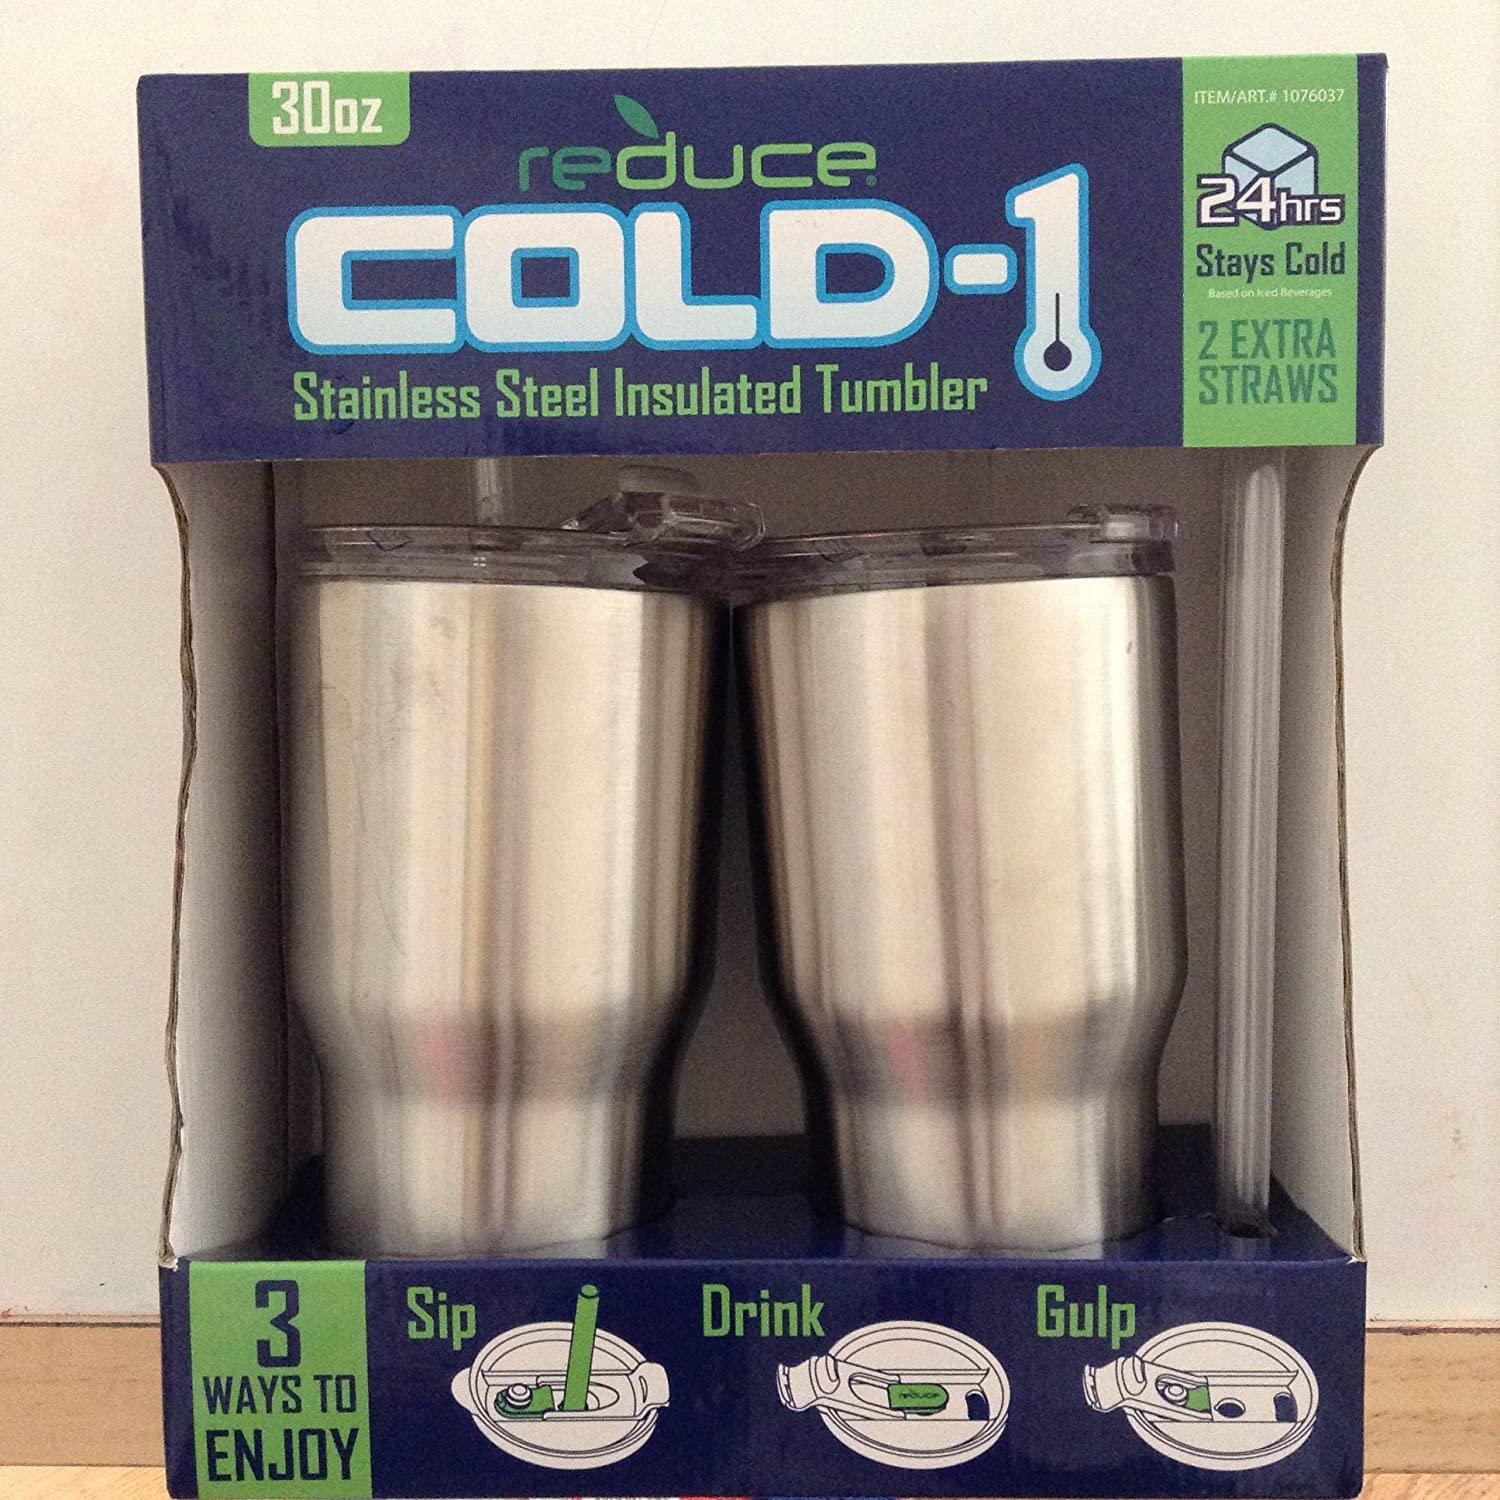 Reduce Cold-1 Stainless Steel Insulated Tumbler - 2 Pack, 30 Oz - Stays cold for 24 hrs!!!